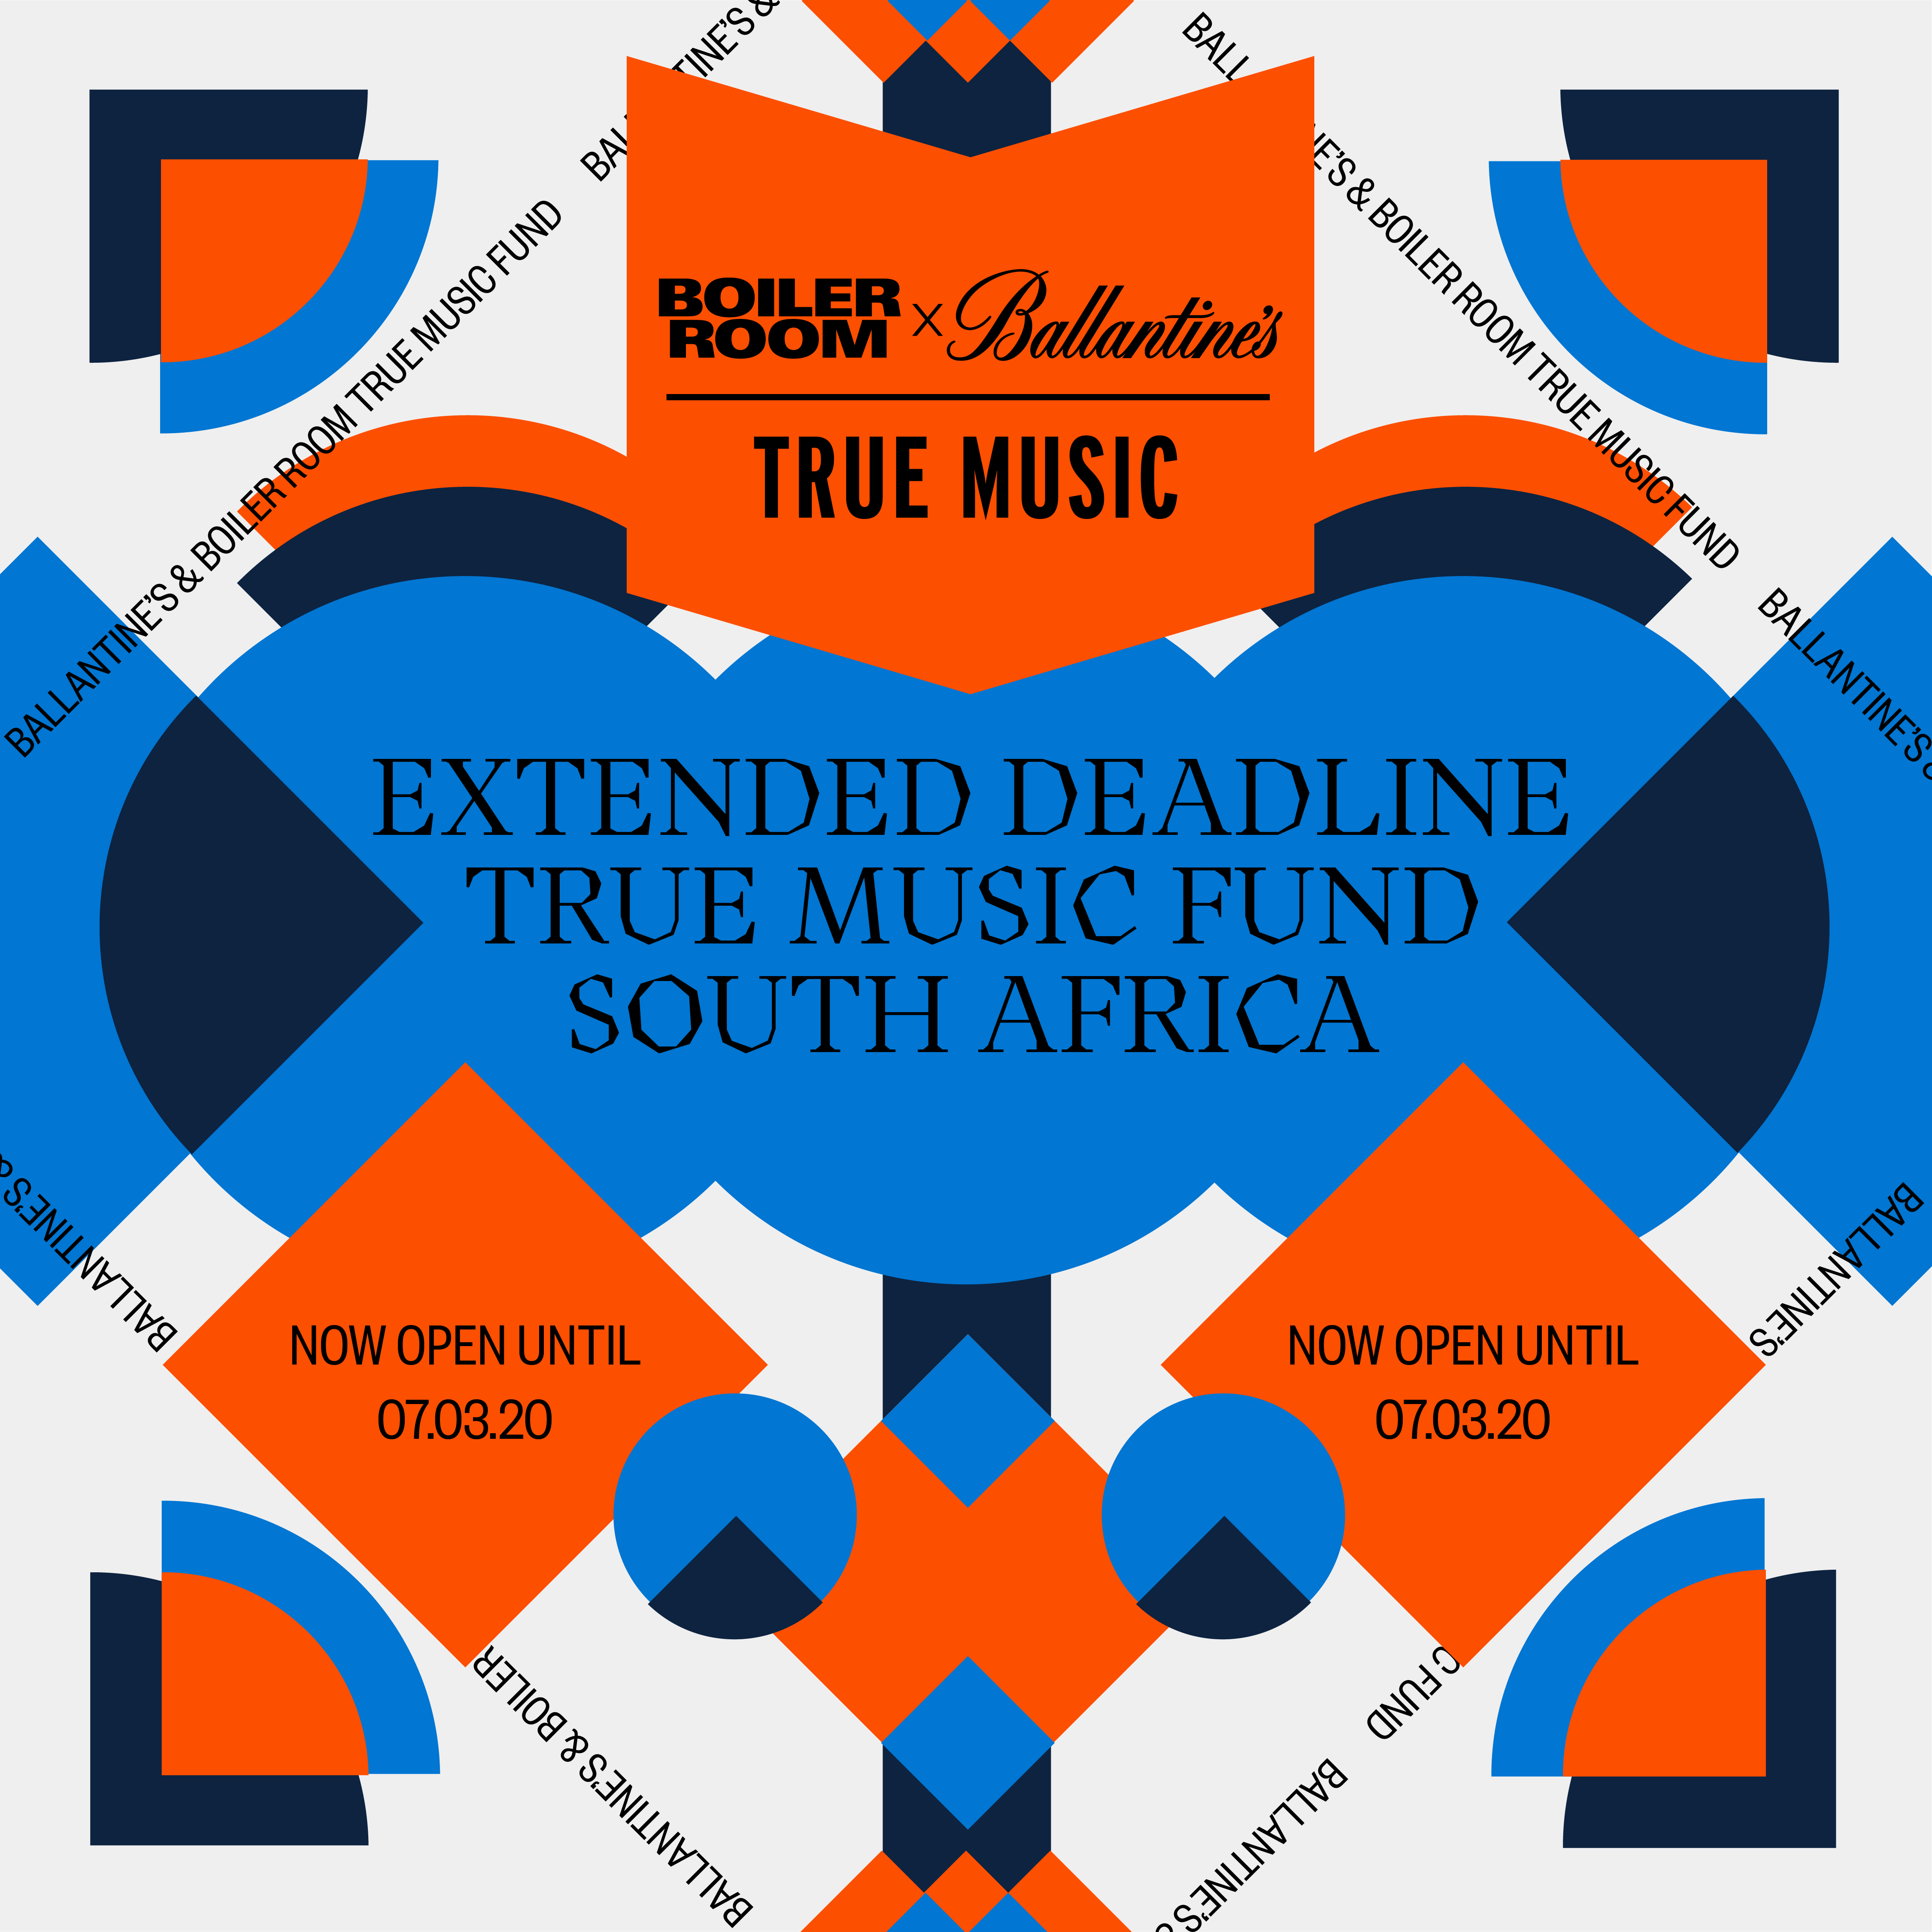 NOW CLOSED: Boiler Room x Ballantine's True Music Fund: South Africa Flyer Image